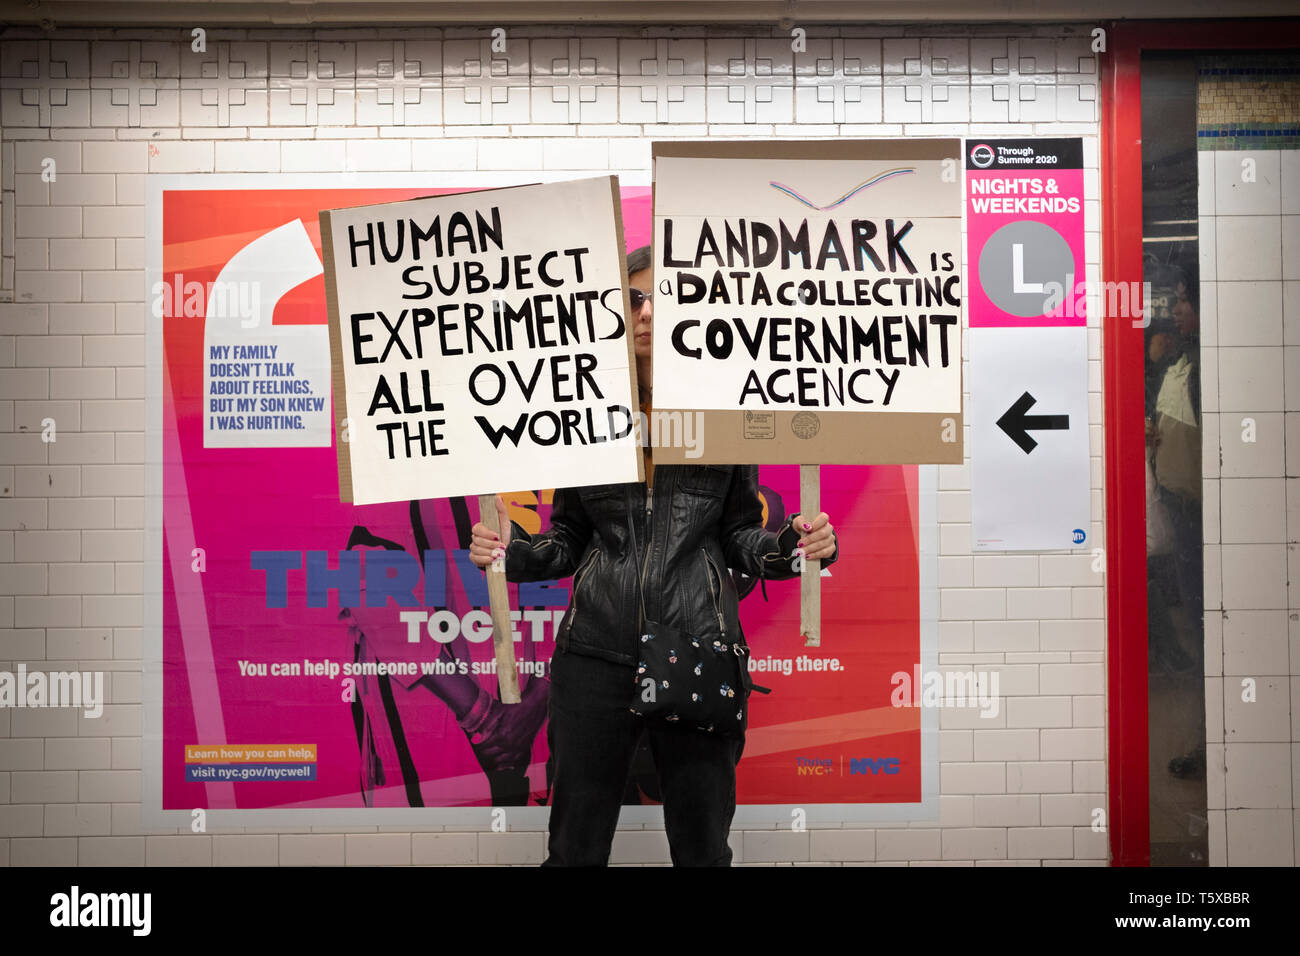 A woman in the Union Street subway station protesting against data collection and privacy invasion. - Stock Image